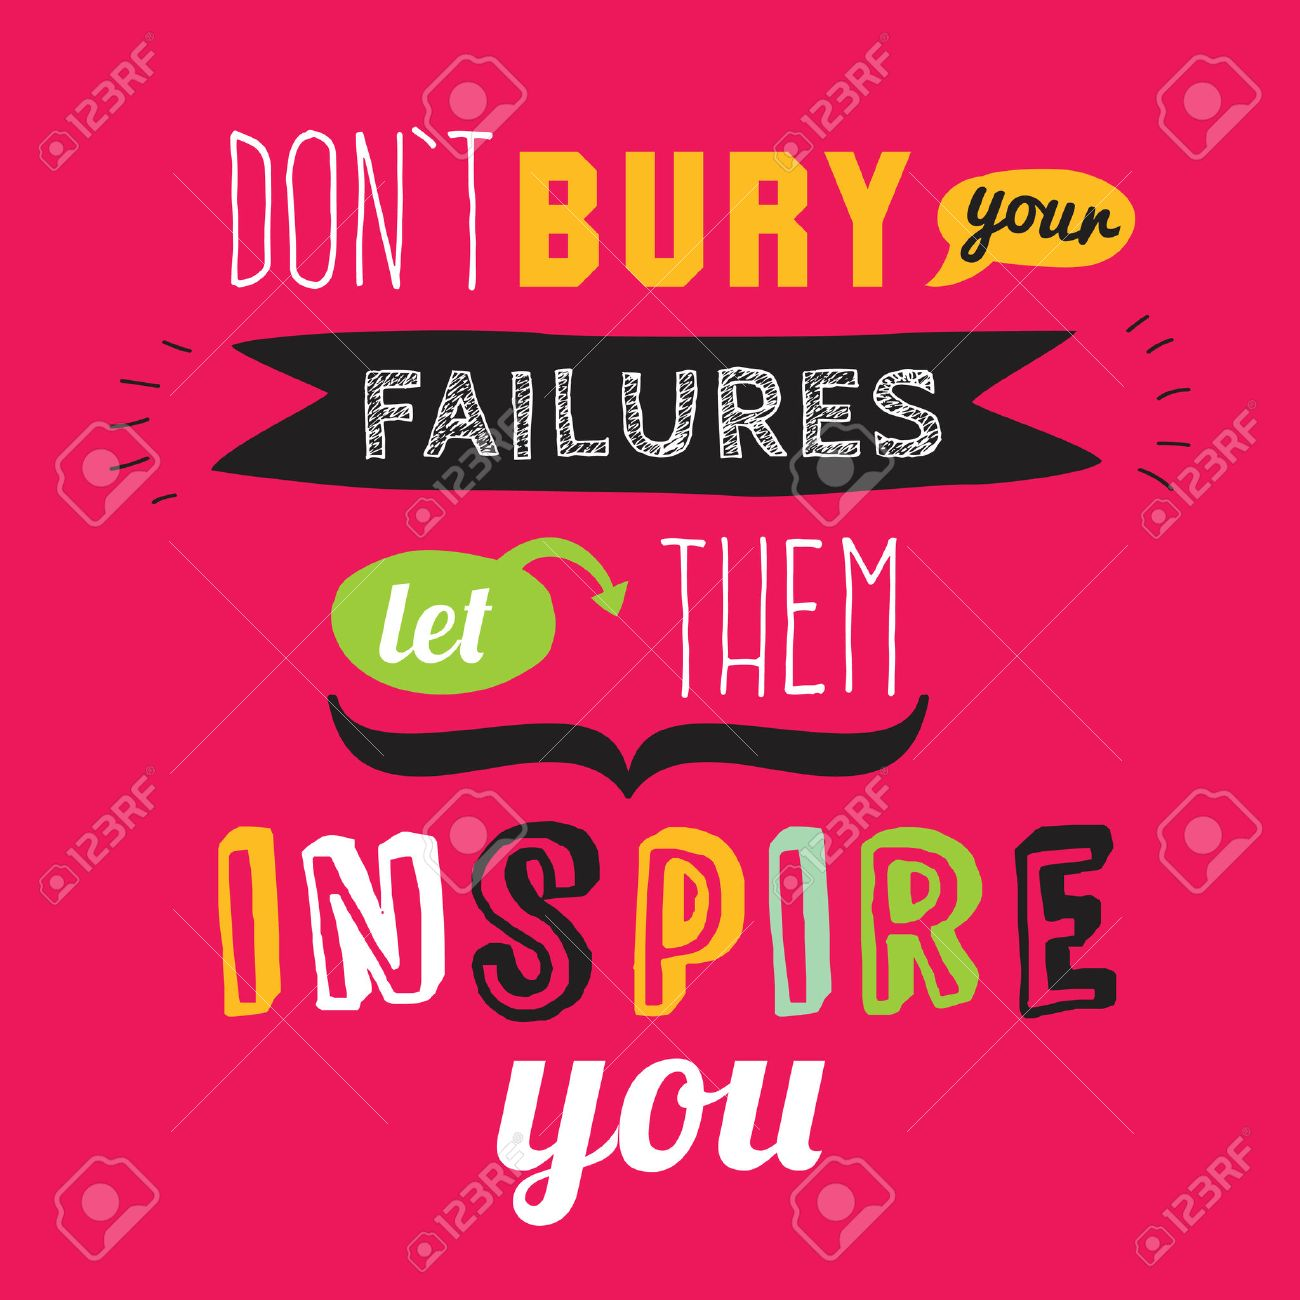 Poster design quotes - Inspirational And Motivational Quotes Vector Poster Design Stylish And Modern Typographic Good For For